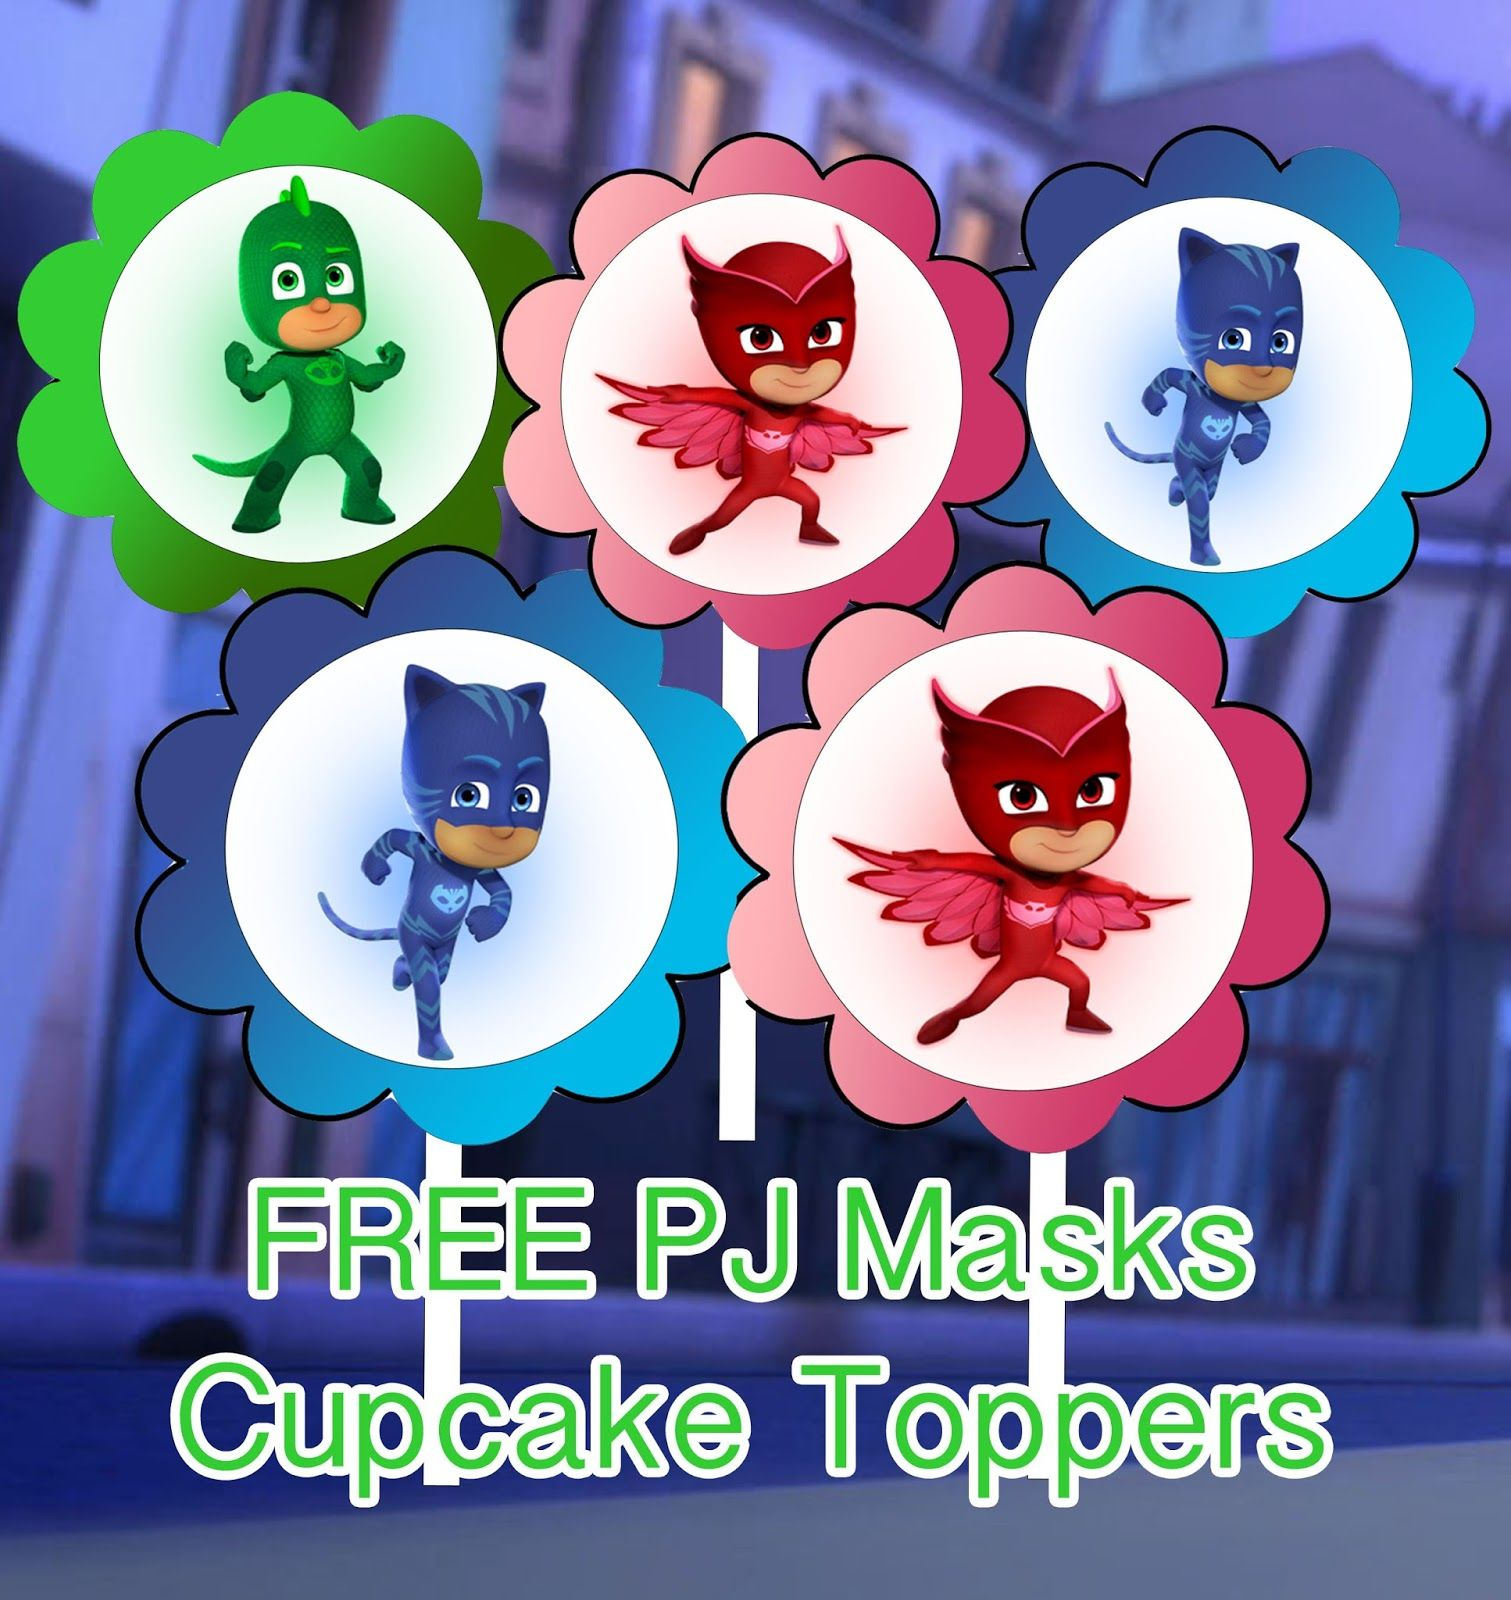 PJ Masks Birthday Party Printable Files Cupcake Toppers